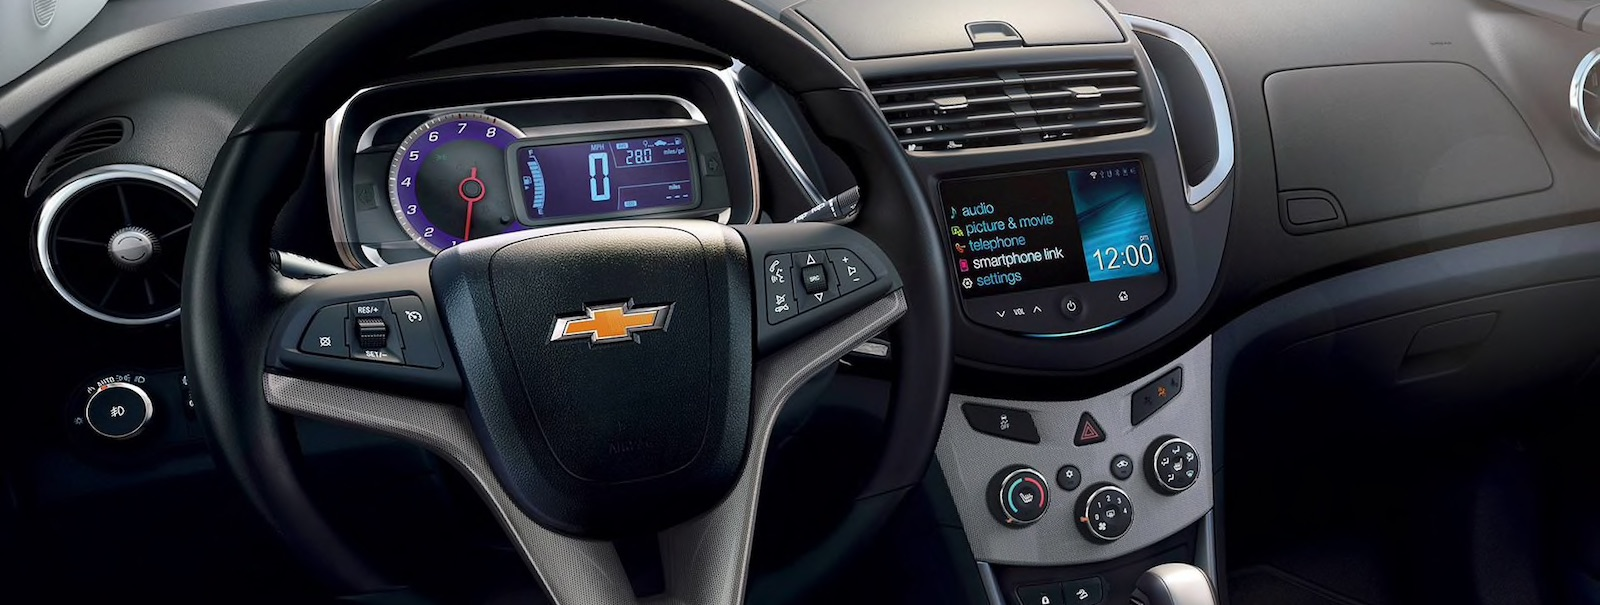 2016 Chevy Trax interior